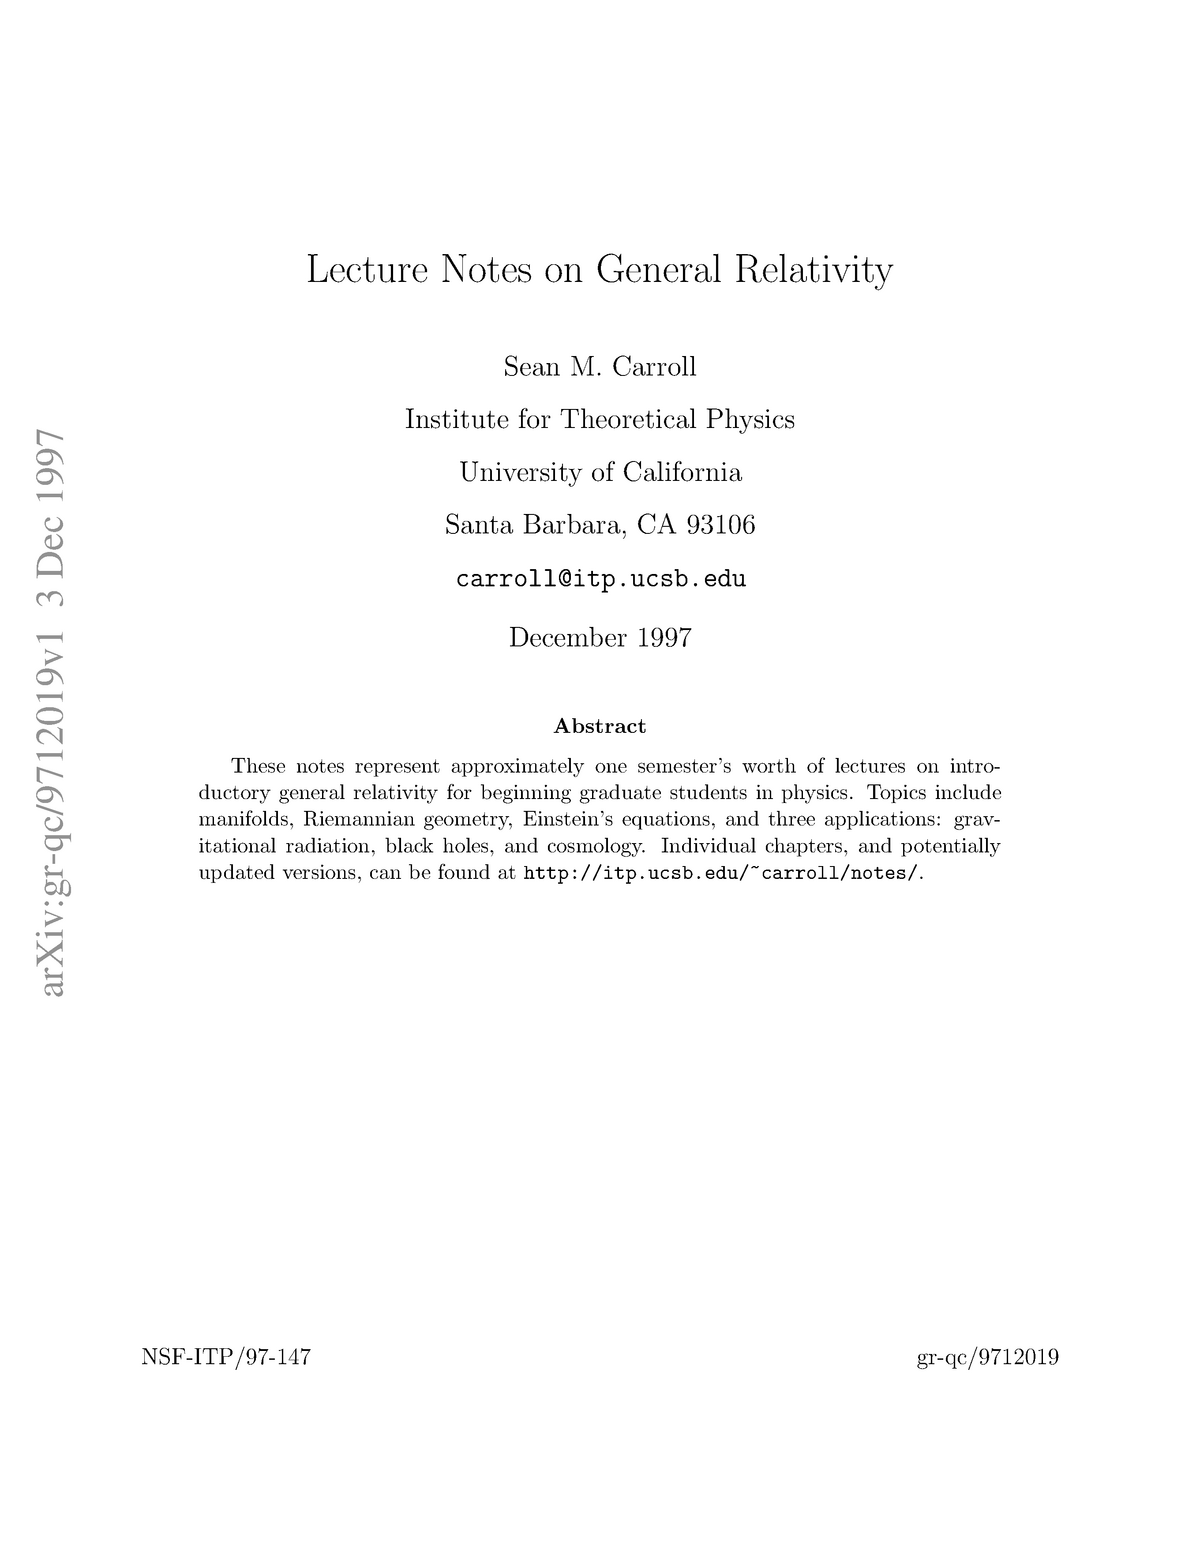 S Carroll Lecturenotes - PHYS 407: Introduction To General